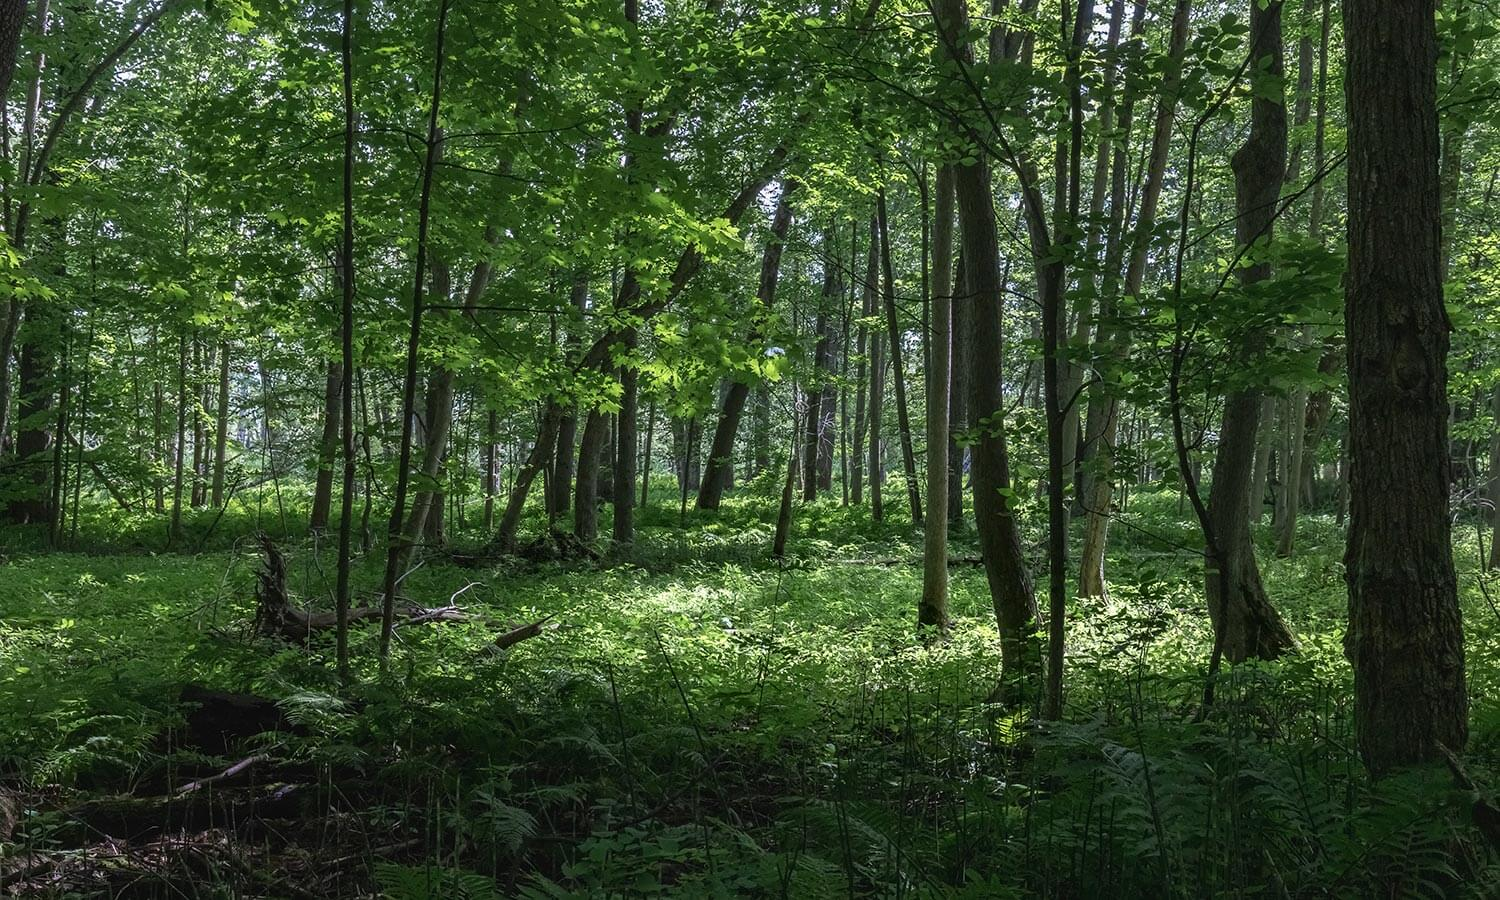 The Top 5 Reasons Why Trees are Vital